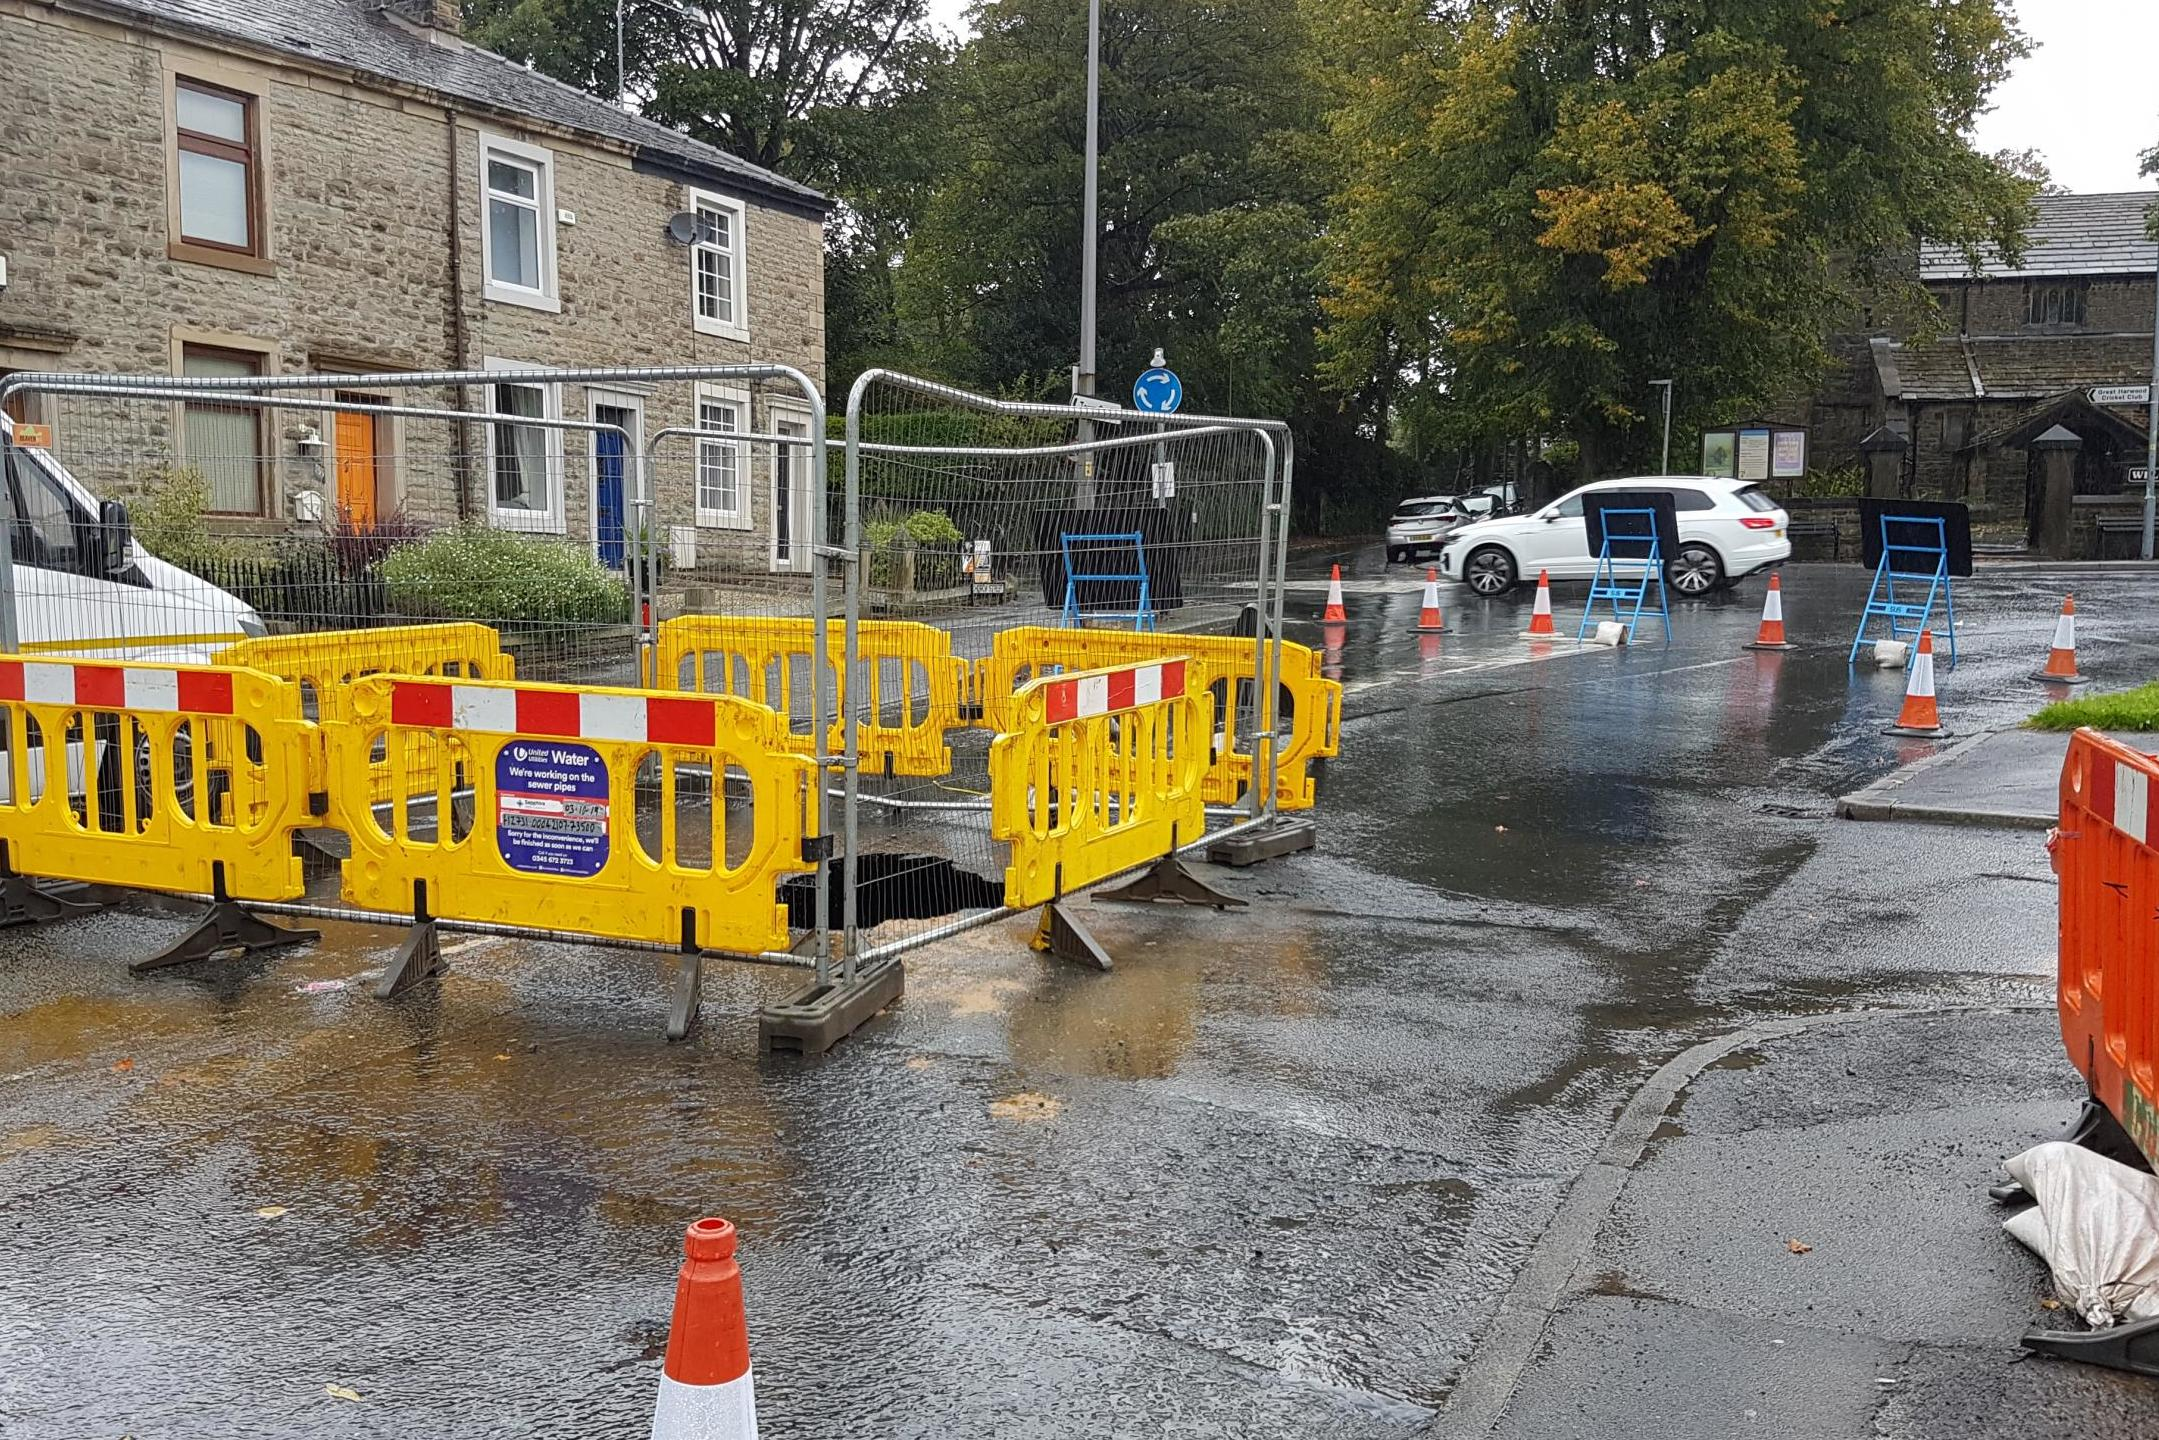 Hole in carriageway could cause road closure headache in